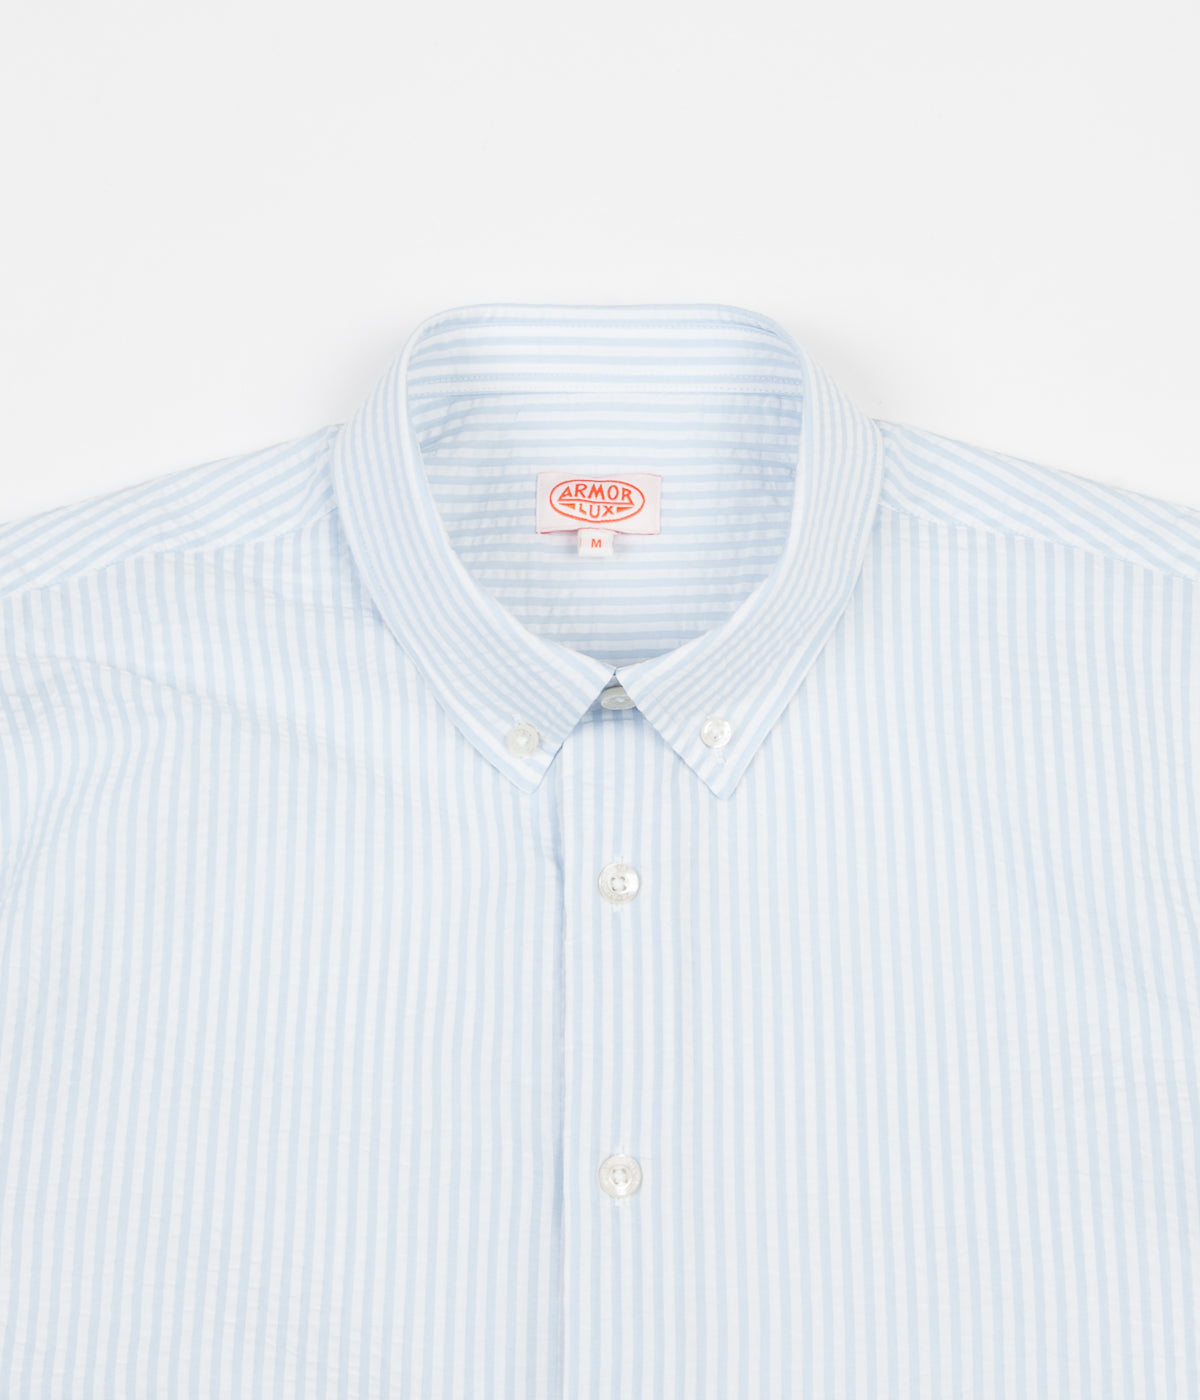 Armor Lux Seersucker Shirt - White / Moody Blue